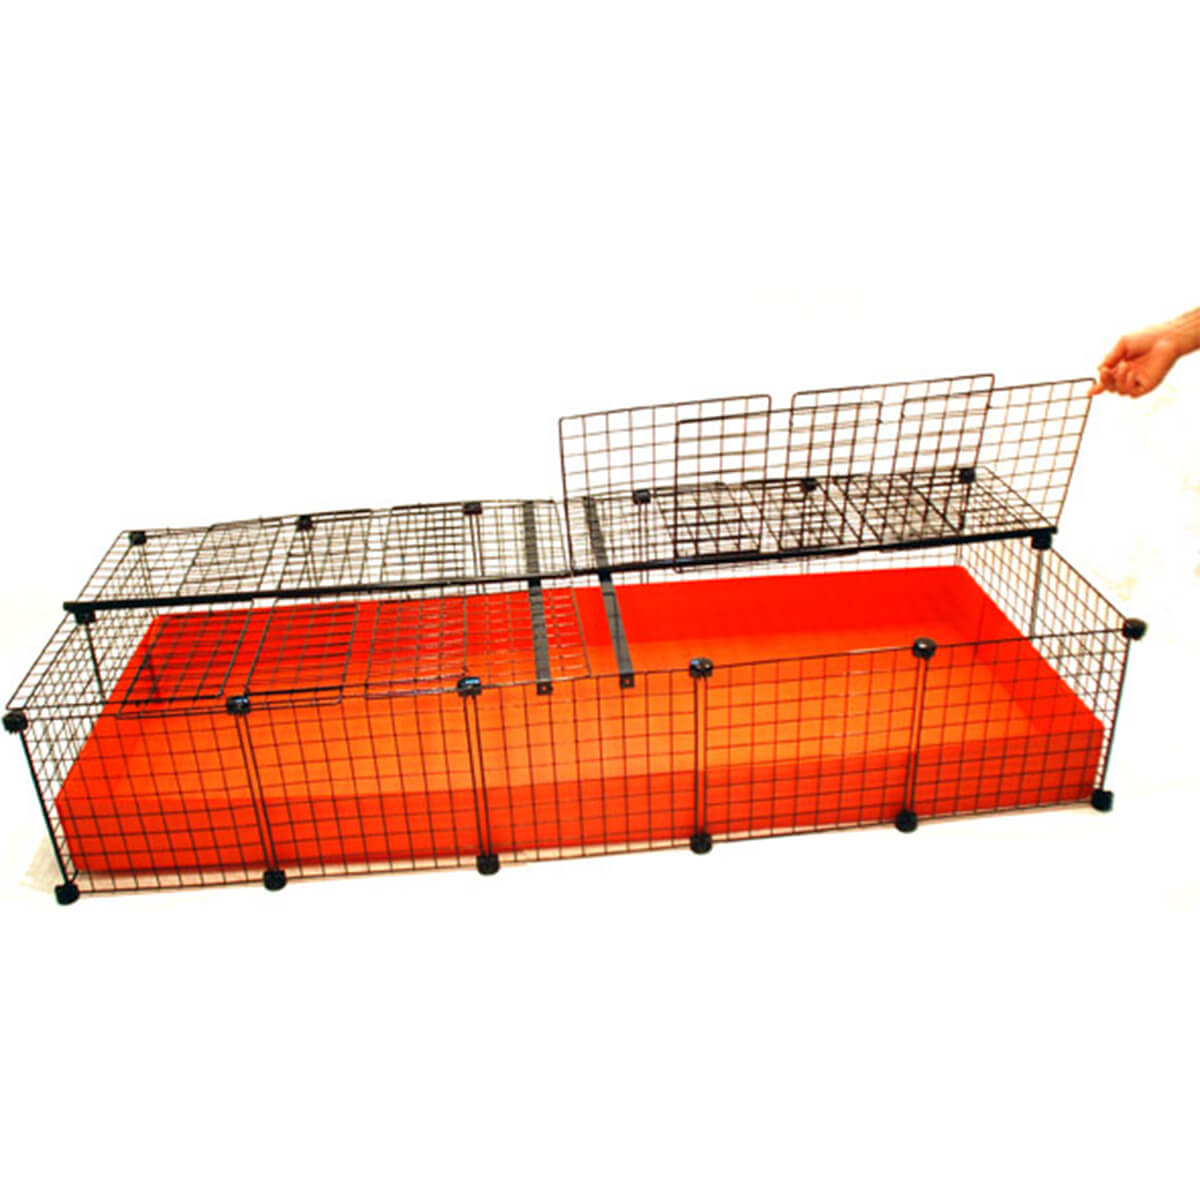 Xl 2x5 grids covered standard covered cages c c for Build your own guinea pig cage